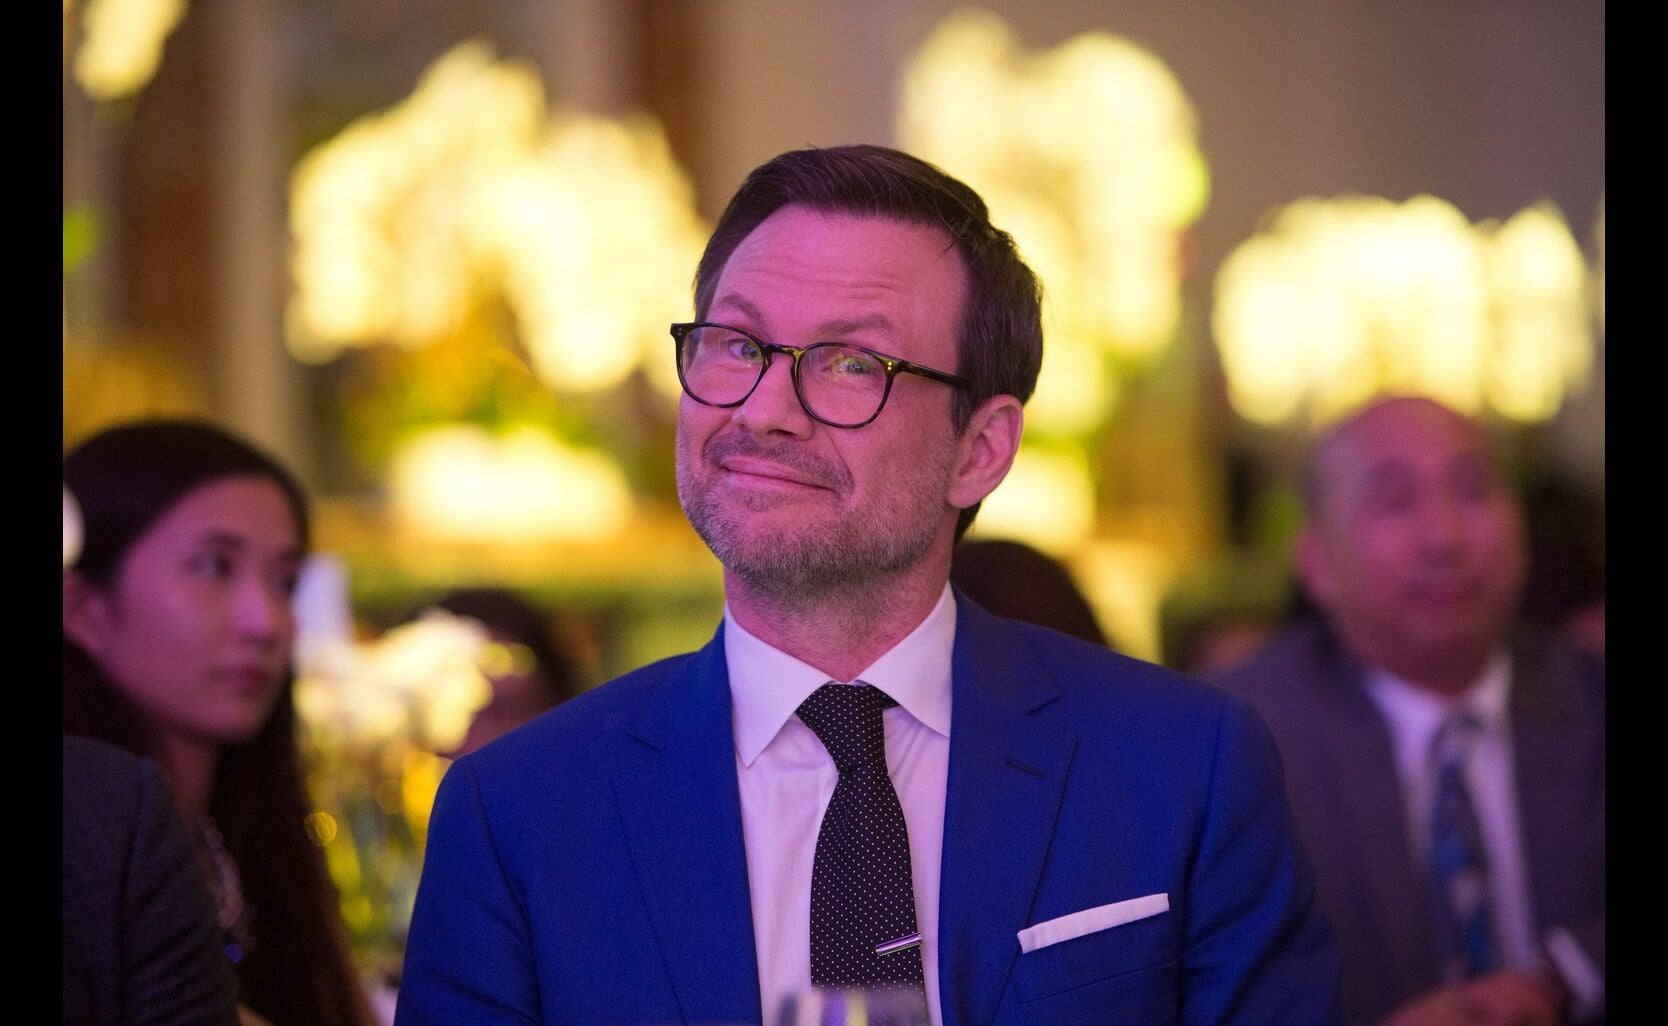 Christian Slater at the Annual Grants Banquet 2016